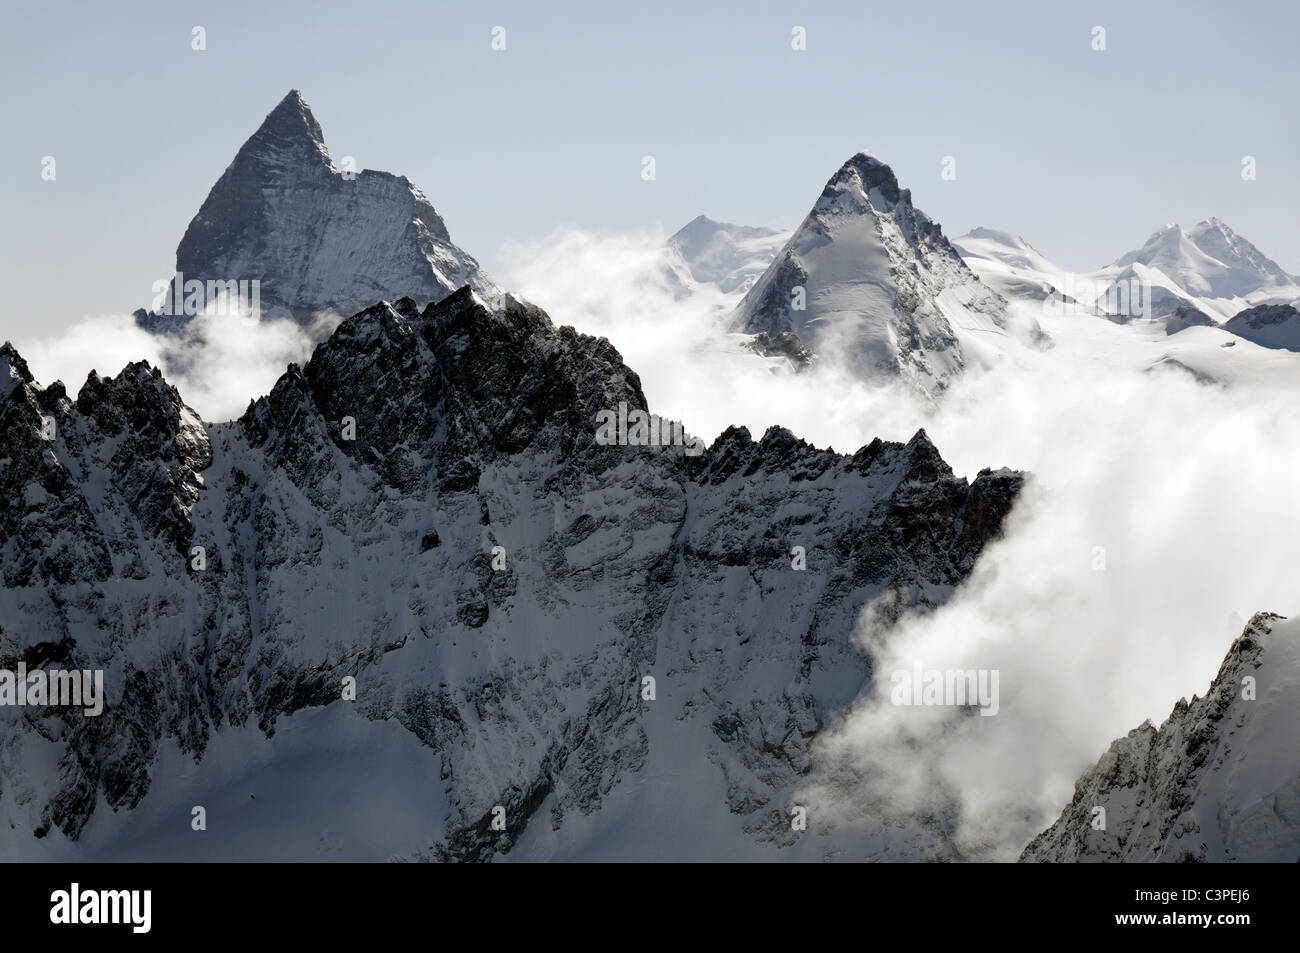 An early morning view on the Haute Route ski tour, Switzerland. Stock Photo